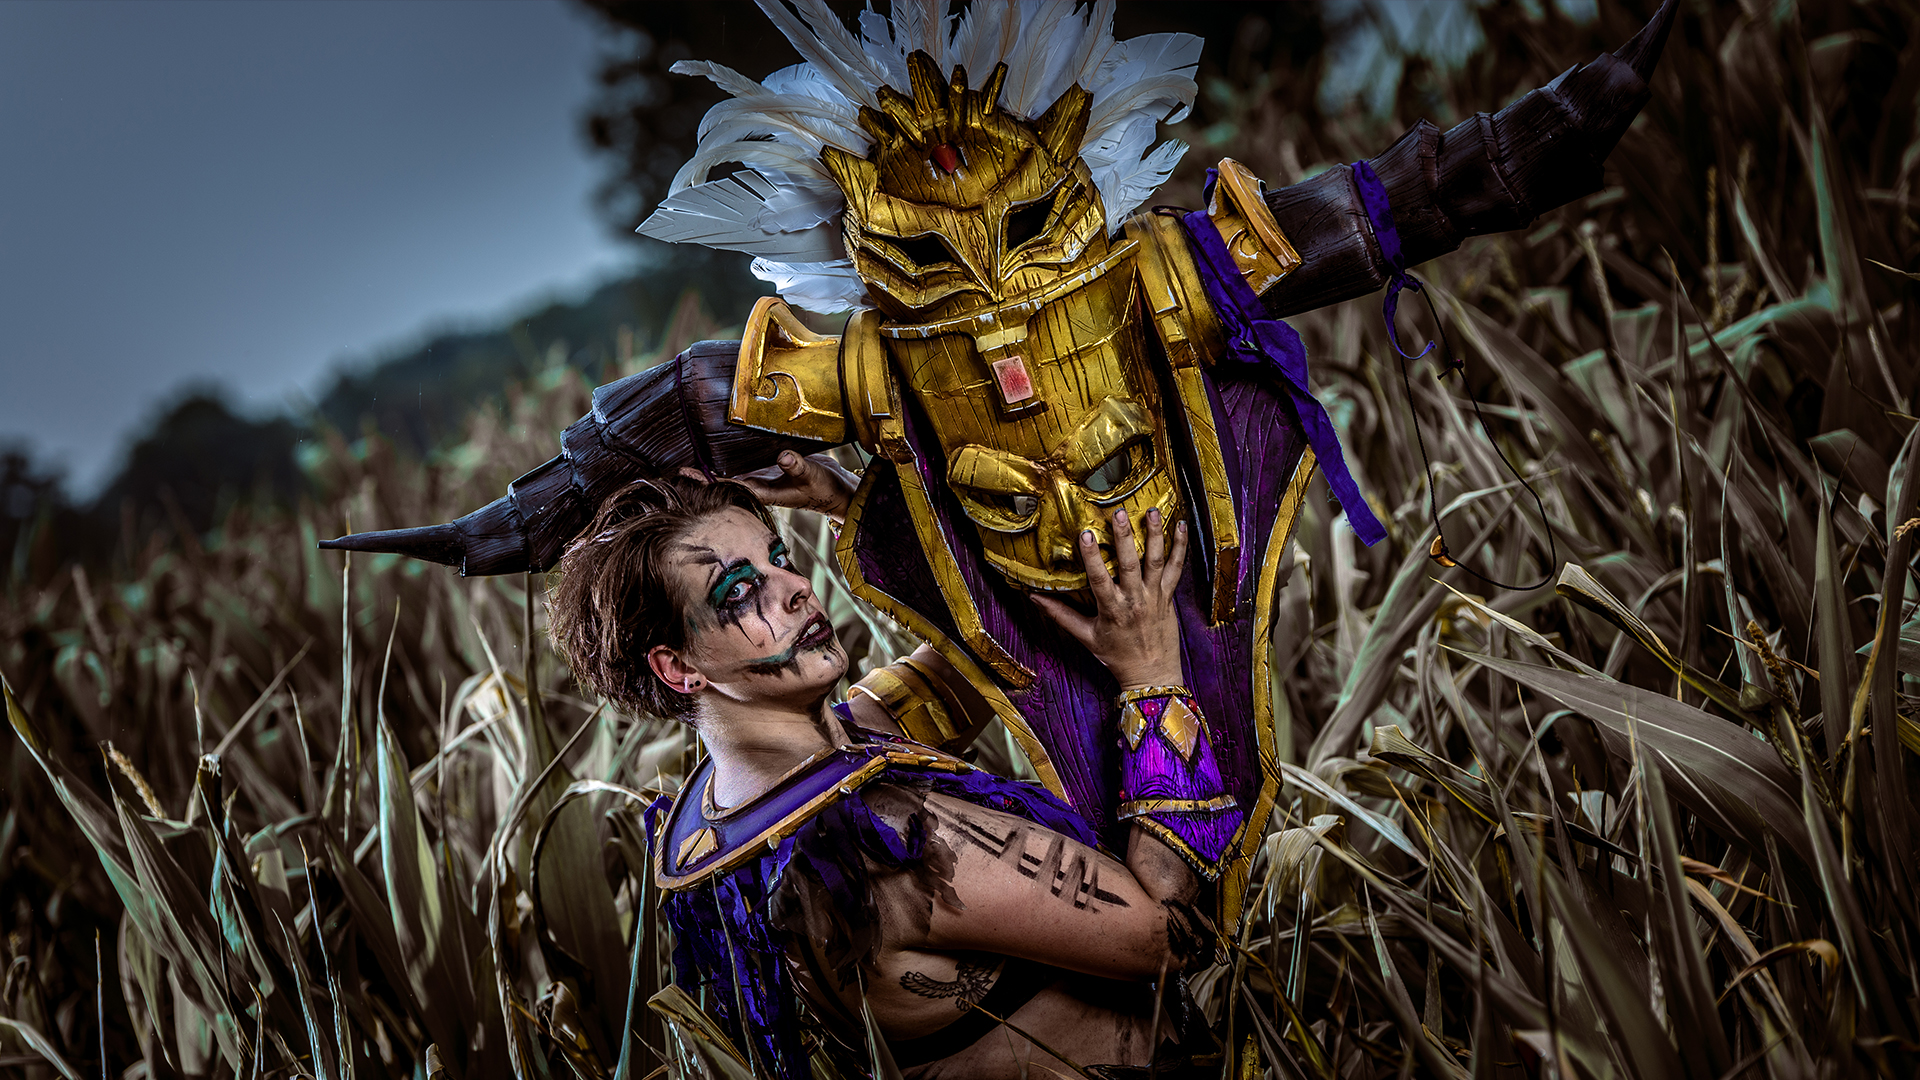 By Vincent Lee Fotografie / cosplay_shots - Kalseru Cosplay